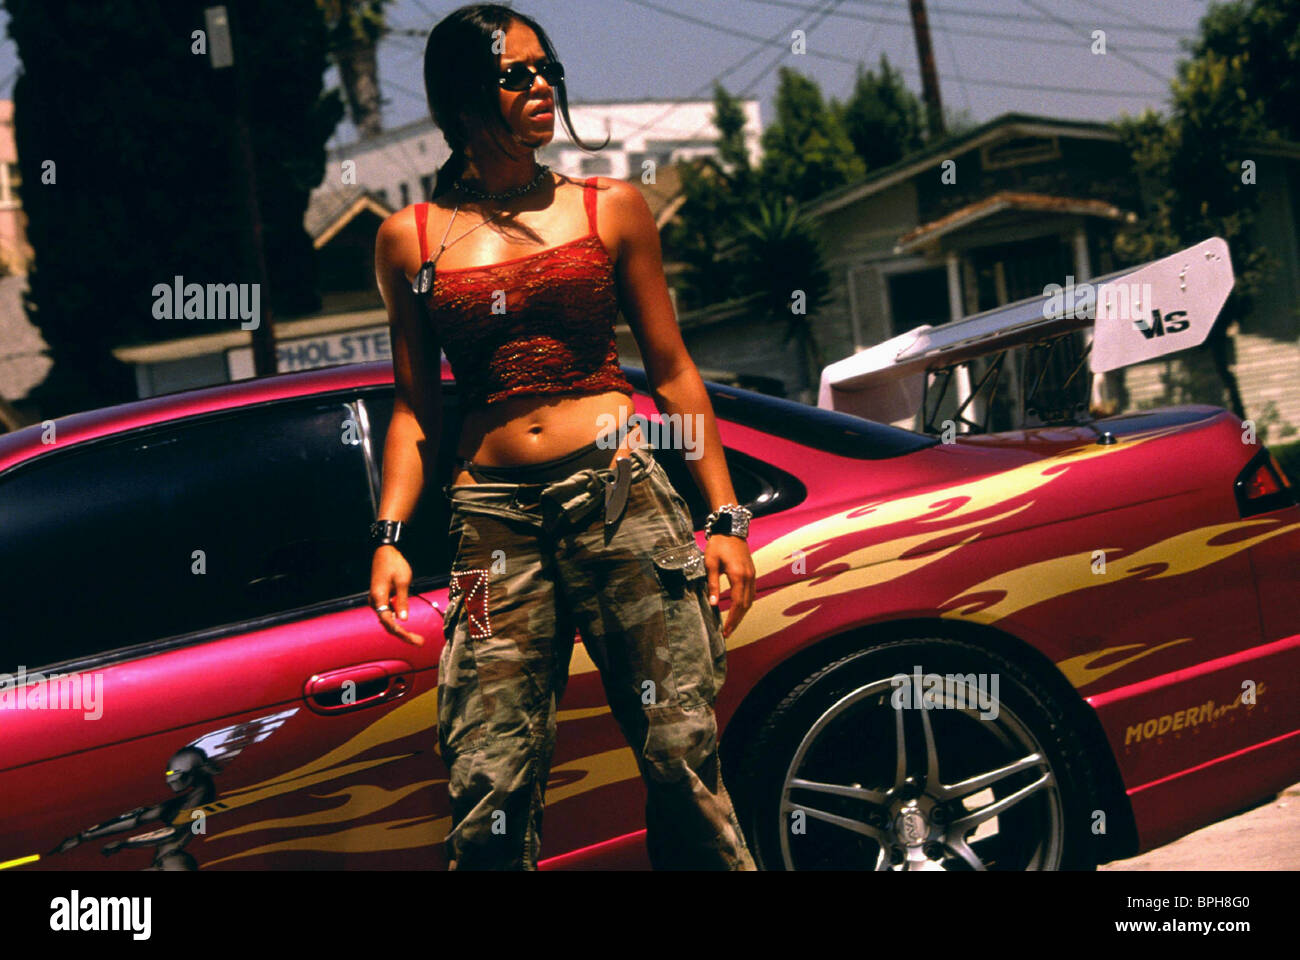 michelle rodriguez the fast and the furious 2001 stock photo royalty free image 31112704 alamy. Black Bedroom Furniture Sets. Home Design Ideas